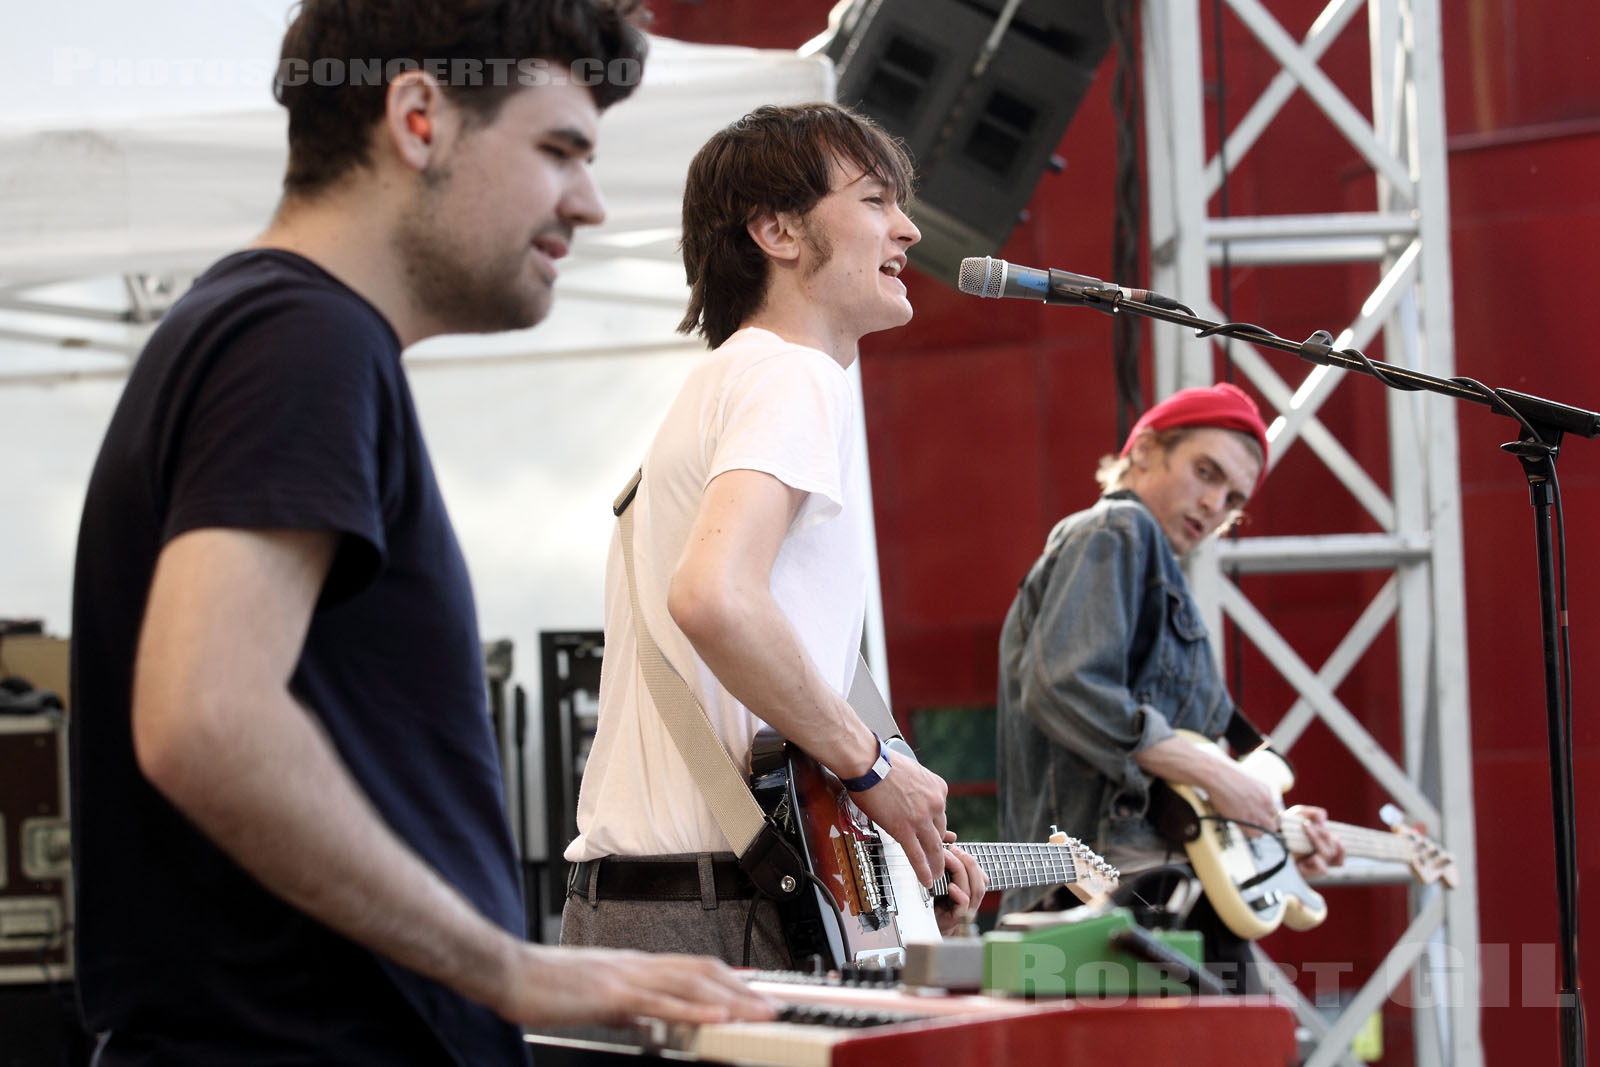 OUGHT - 2015-05-24 - PARIS - Parc de la Villette